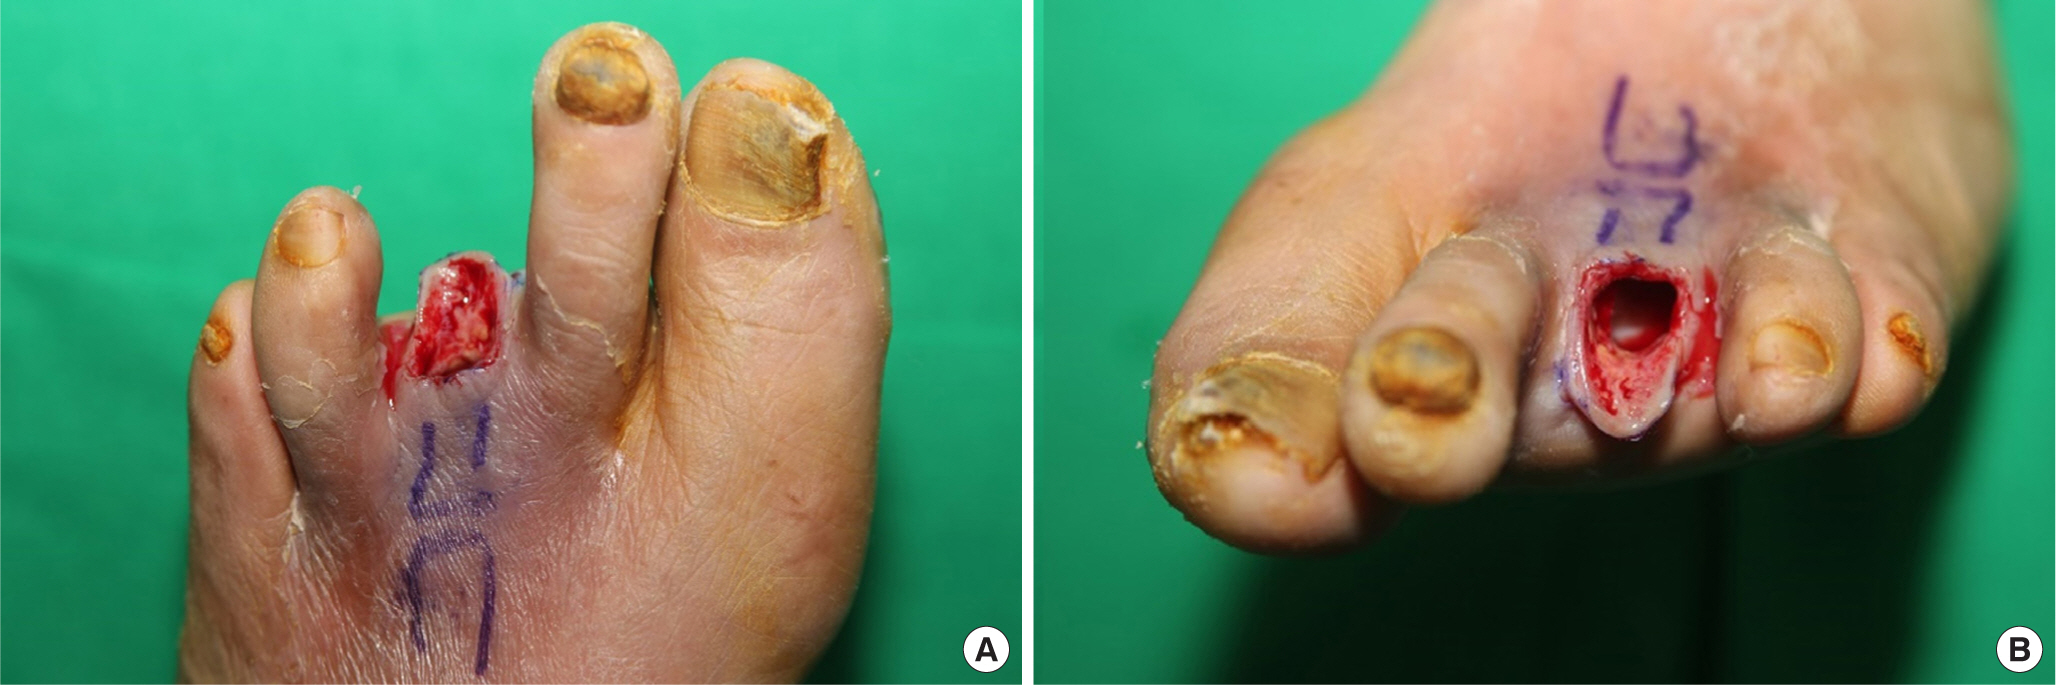 Modified Toe Amputation Reduces Hematoma Rate in Diabetic